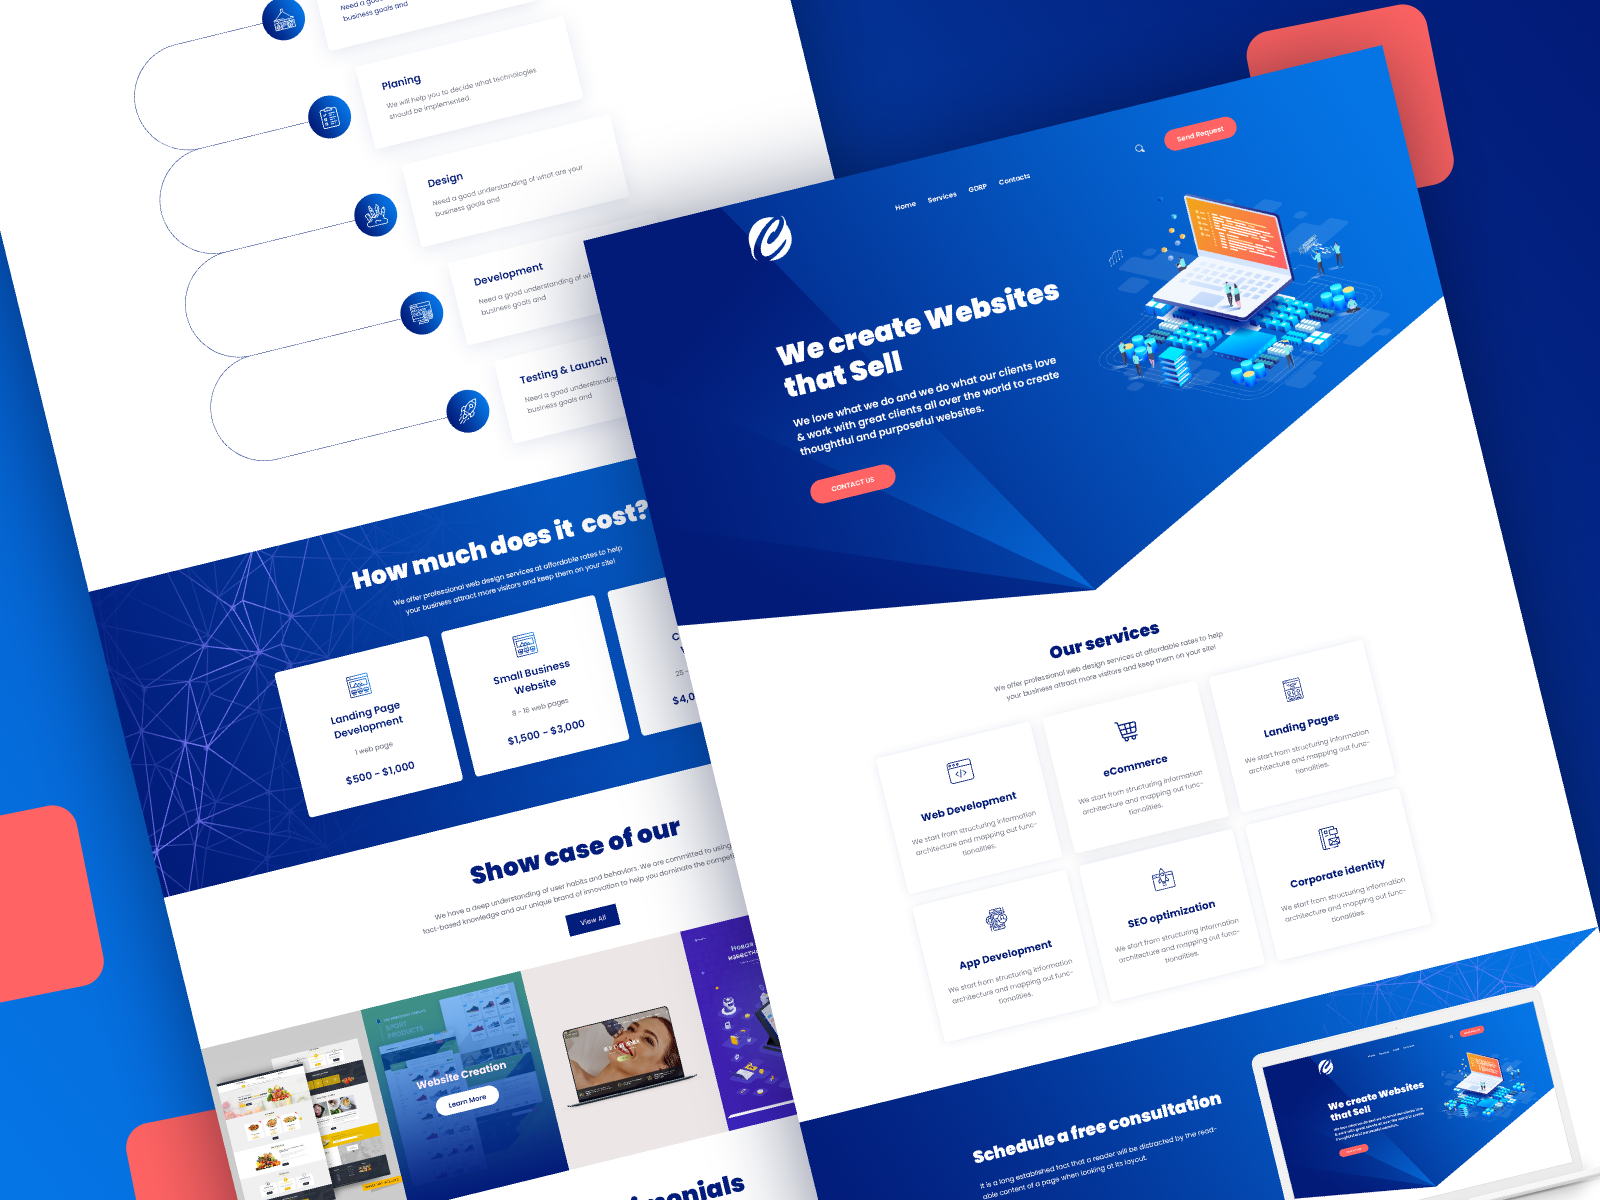 Creative Web Design Development Agency Web Template By Pluginbazar On Dribbble